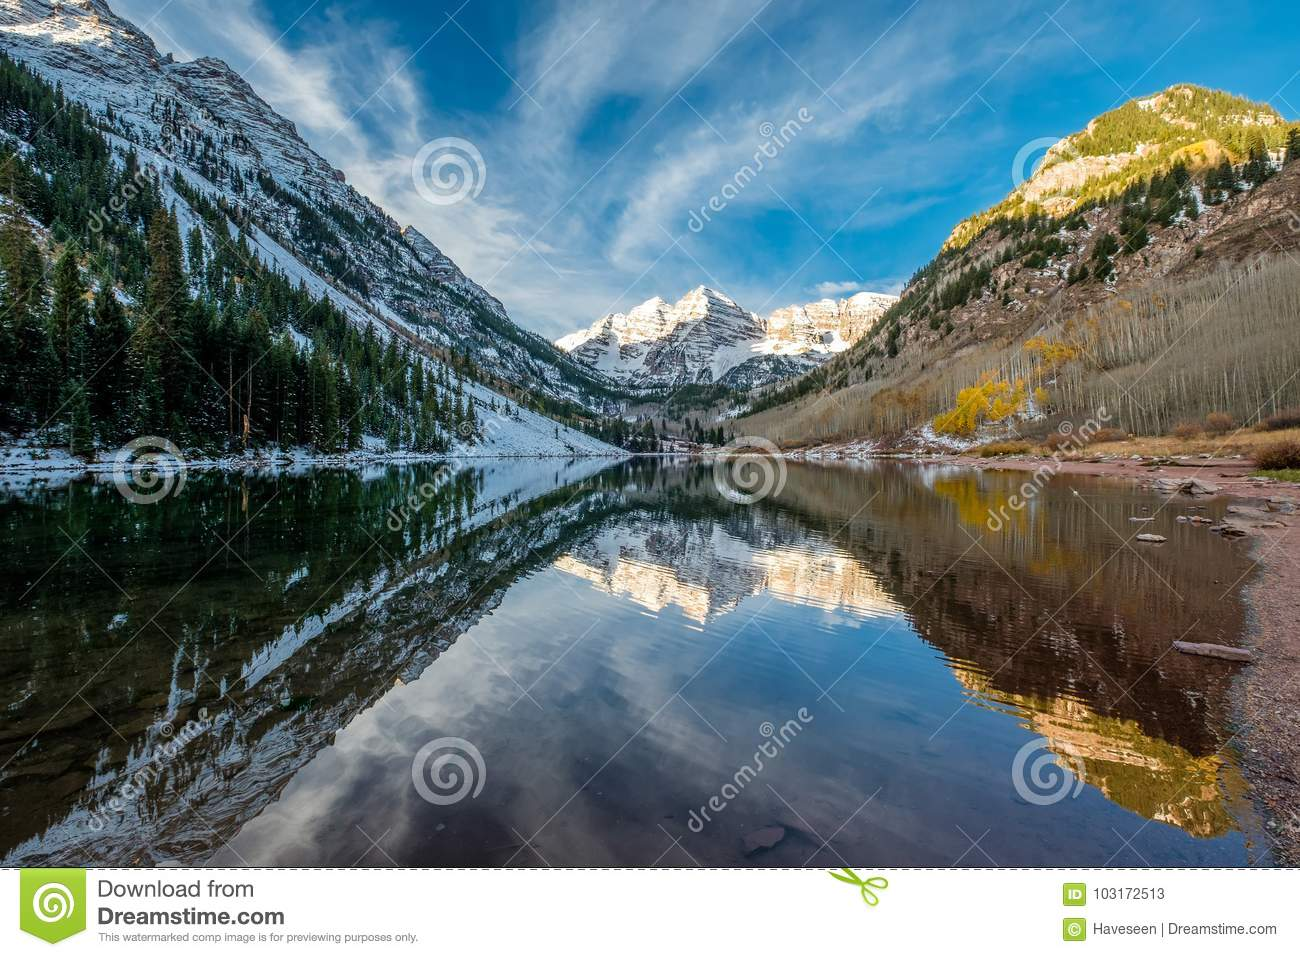 Maroon Bells And Maroon Lake Landscape Stock Image - Image